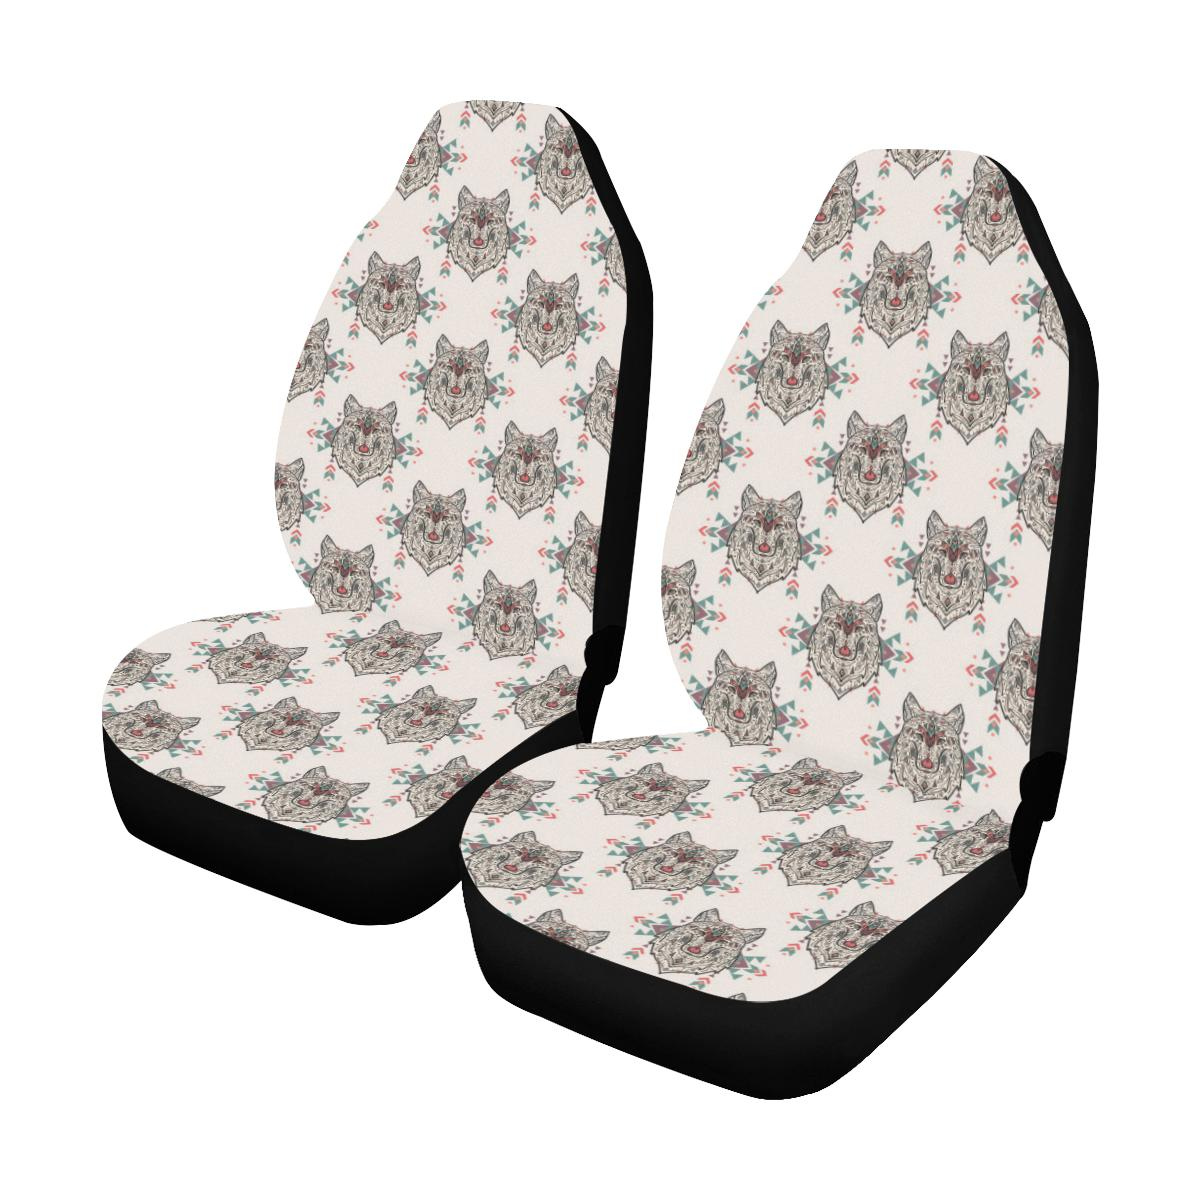 Aztec Wolf Pattern Print Design 01 Car Seat Covers (Set of 2)-JORJUNE.COM